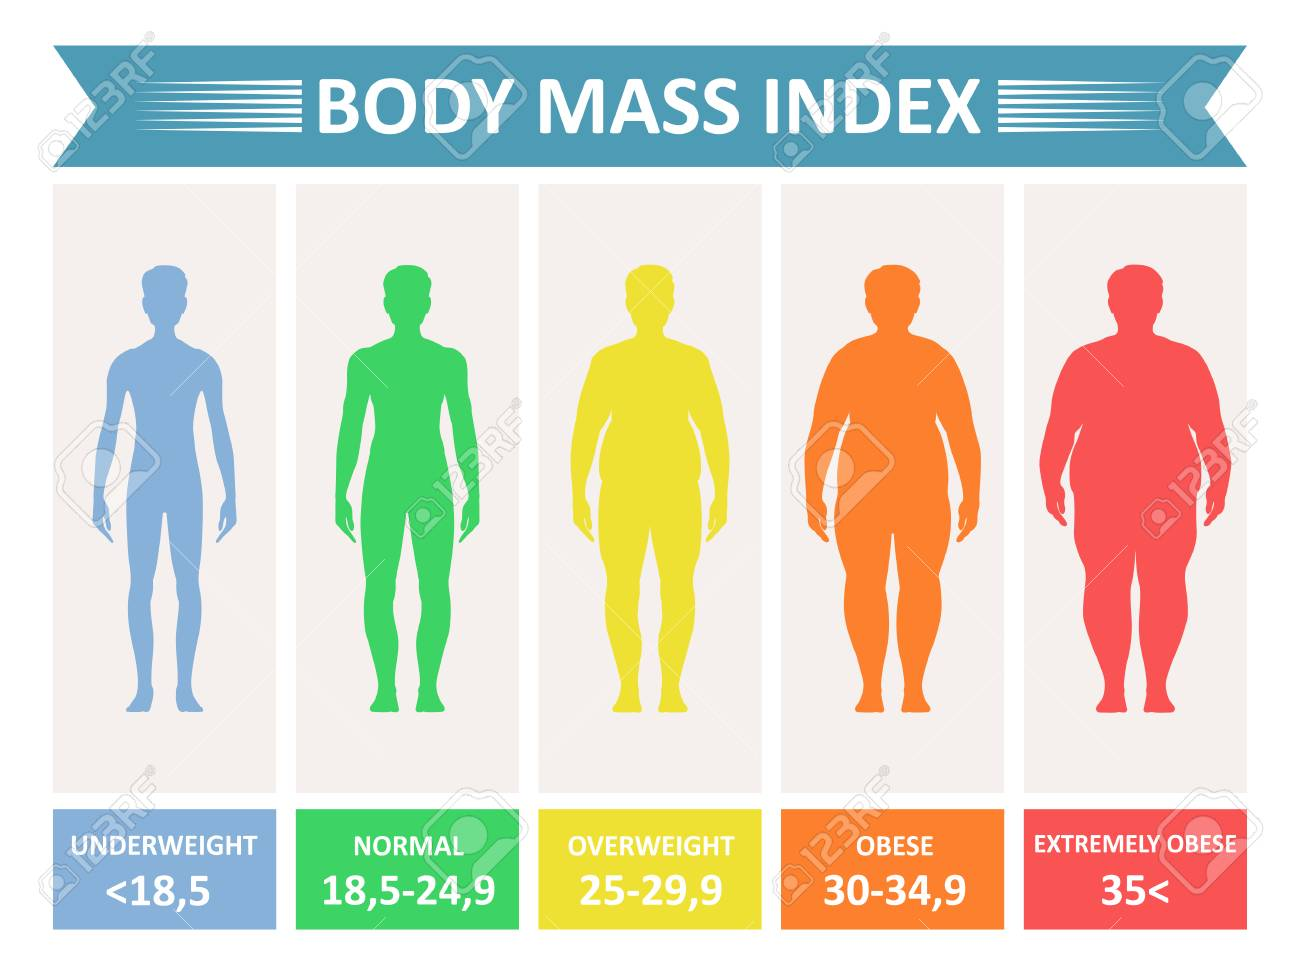 hight resolution of index mass body rating chart of body fat based on height and